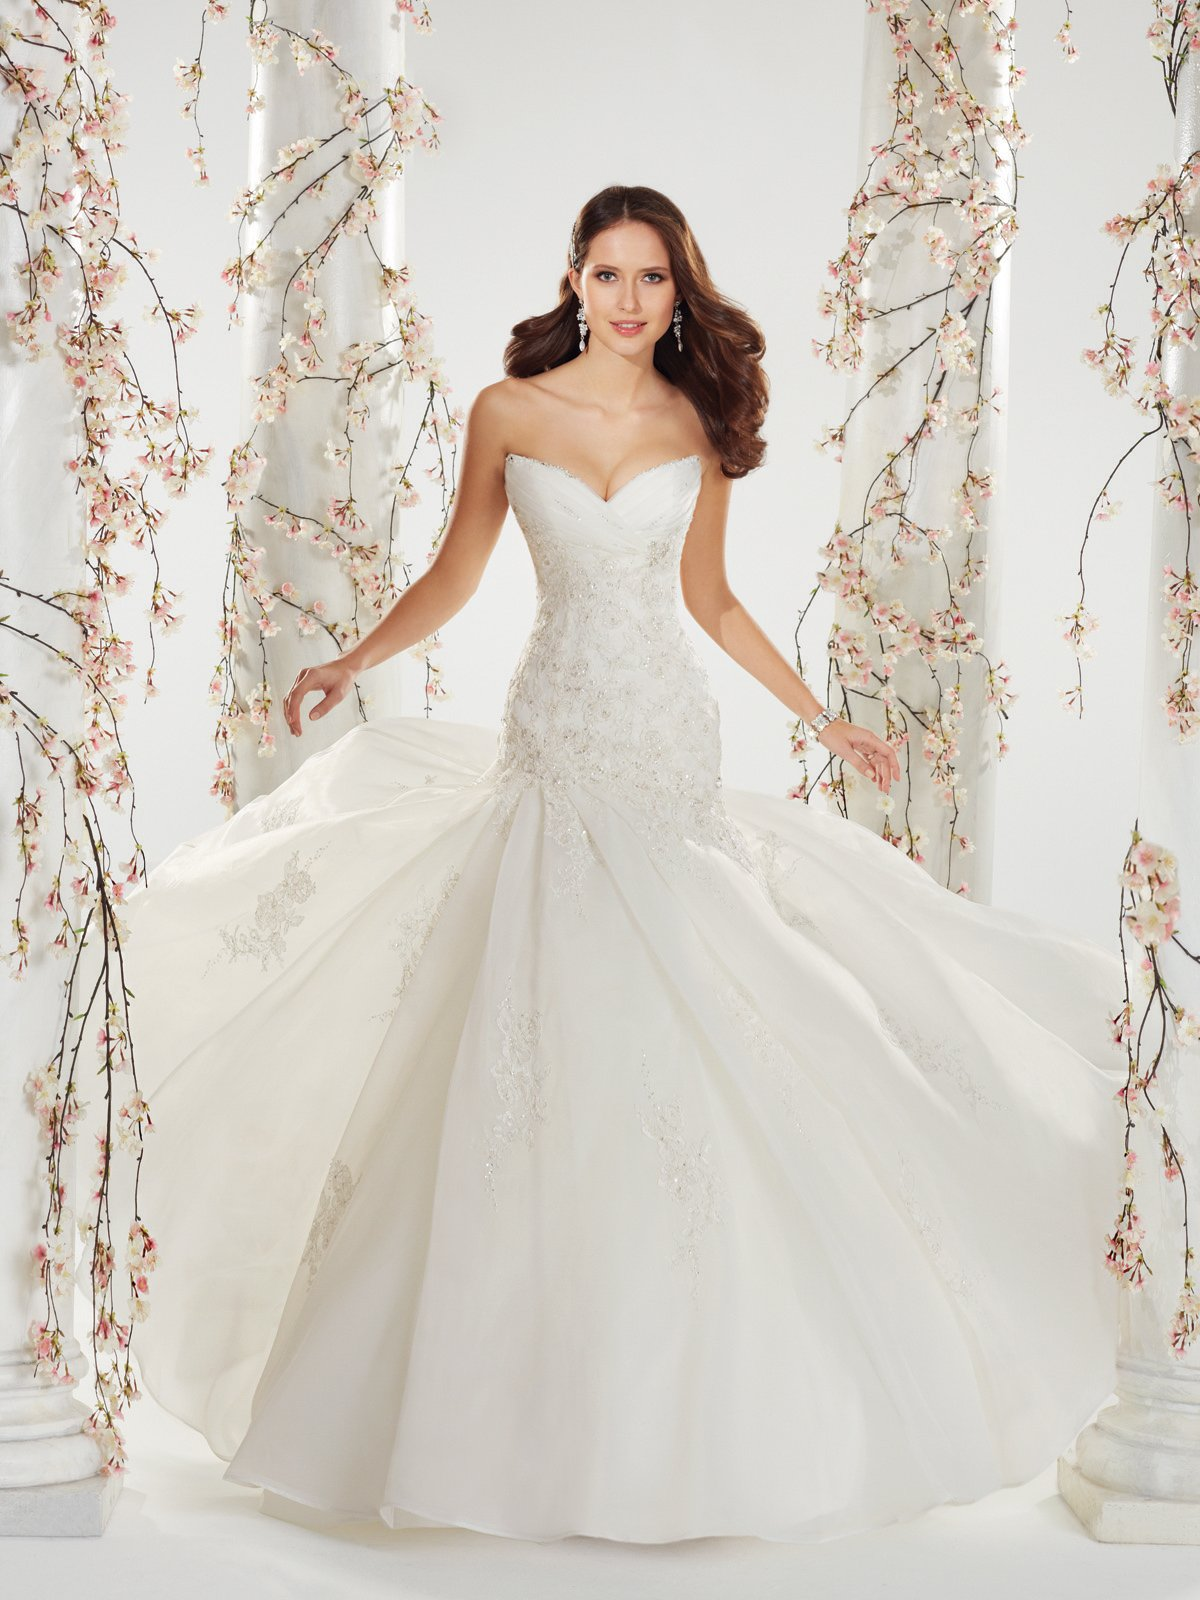 Famous wedding dress designers wedding and bridal for Find a wedding dress designer